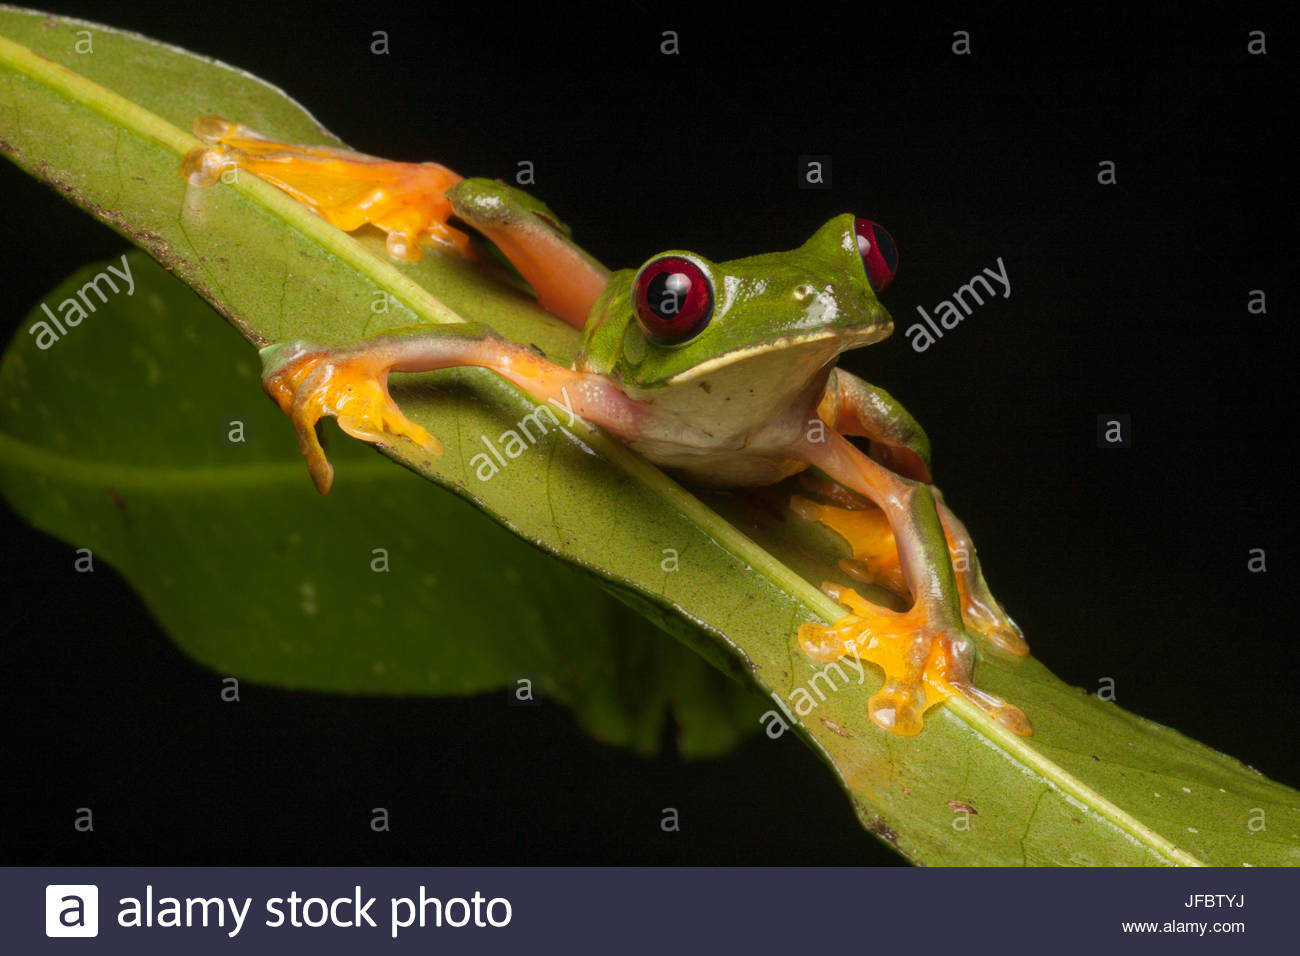 Portrait of a gliding tree frog, Agalychnis spurrelli, on a leaf. - Stock Image